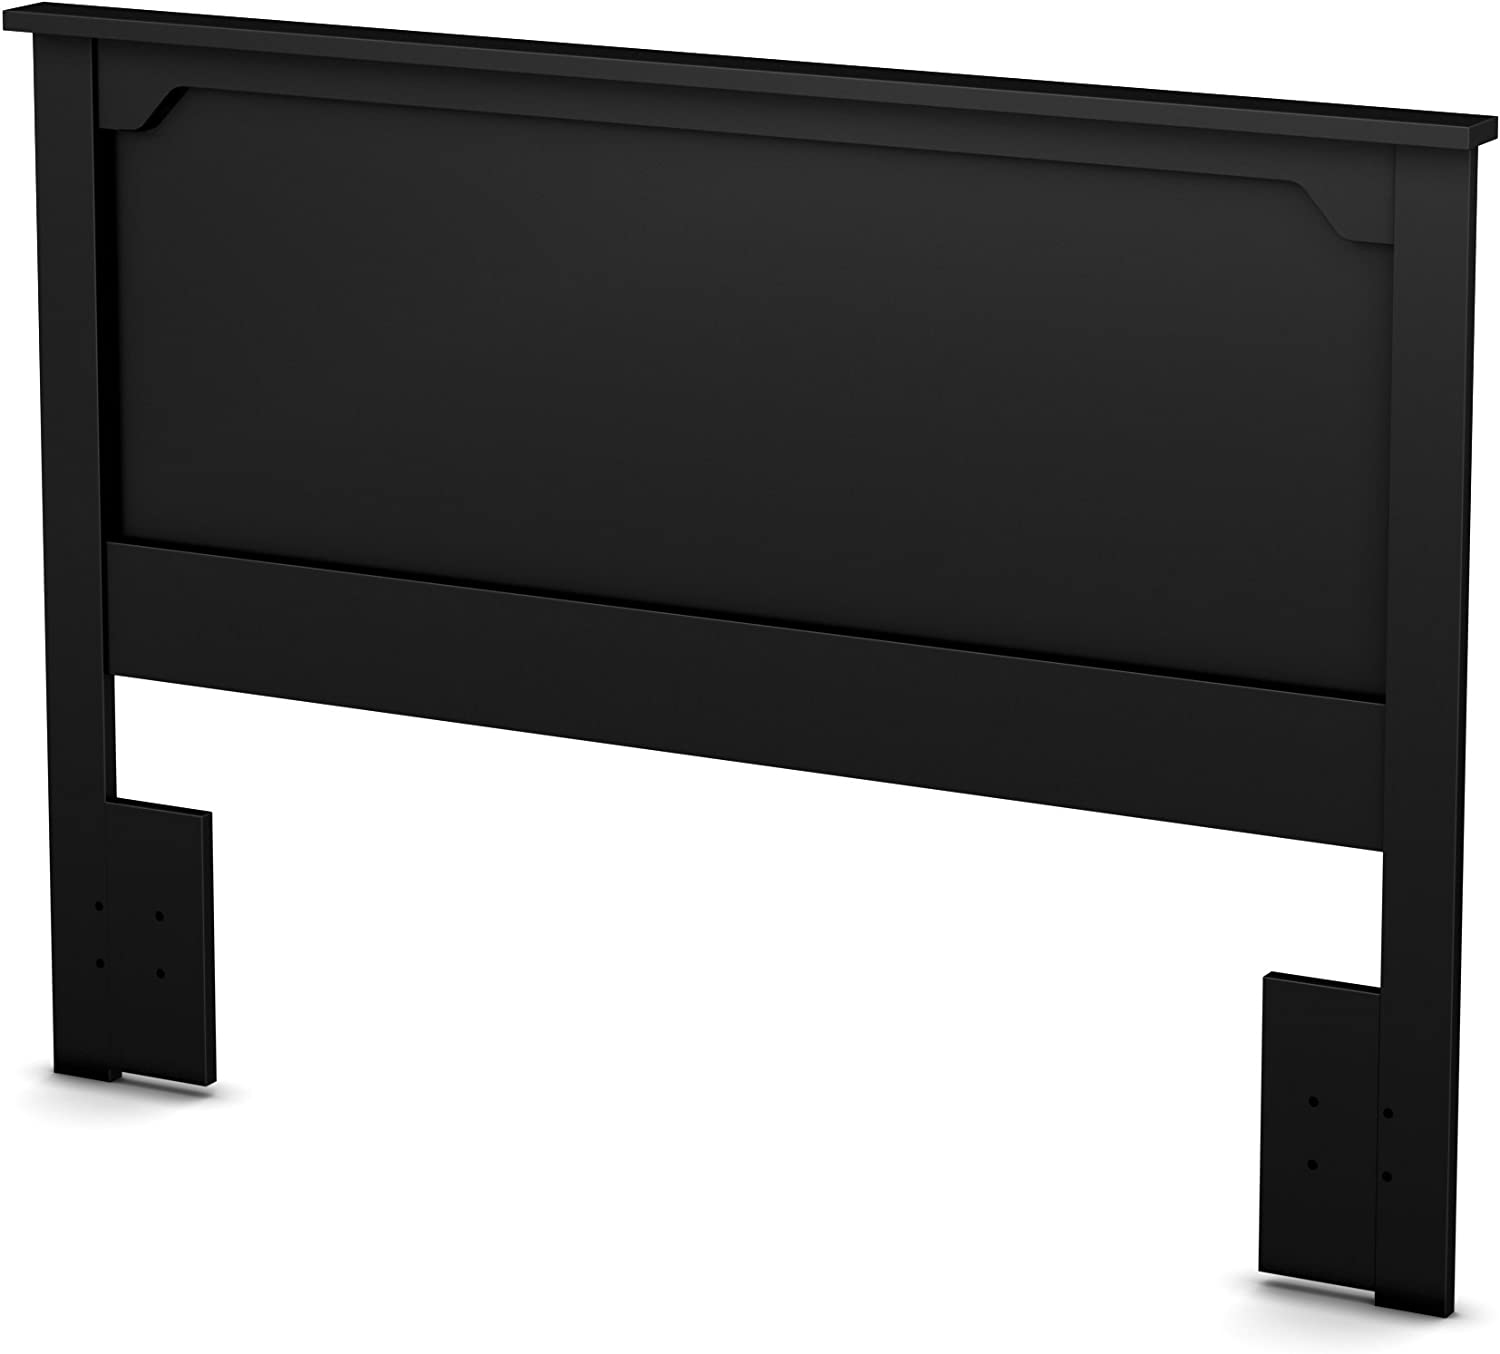 South Shore Furniture 54 60-Feet ' Fusion Headboard, Full Queen, Pure Black